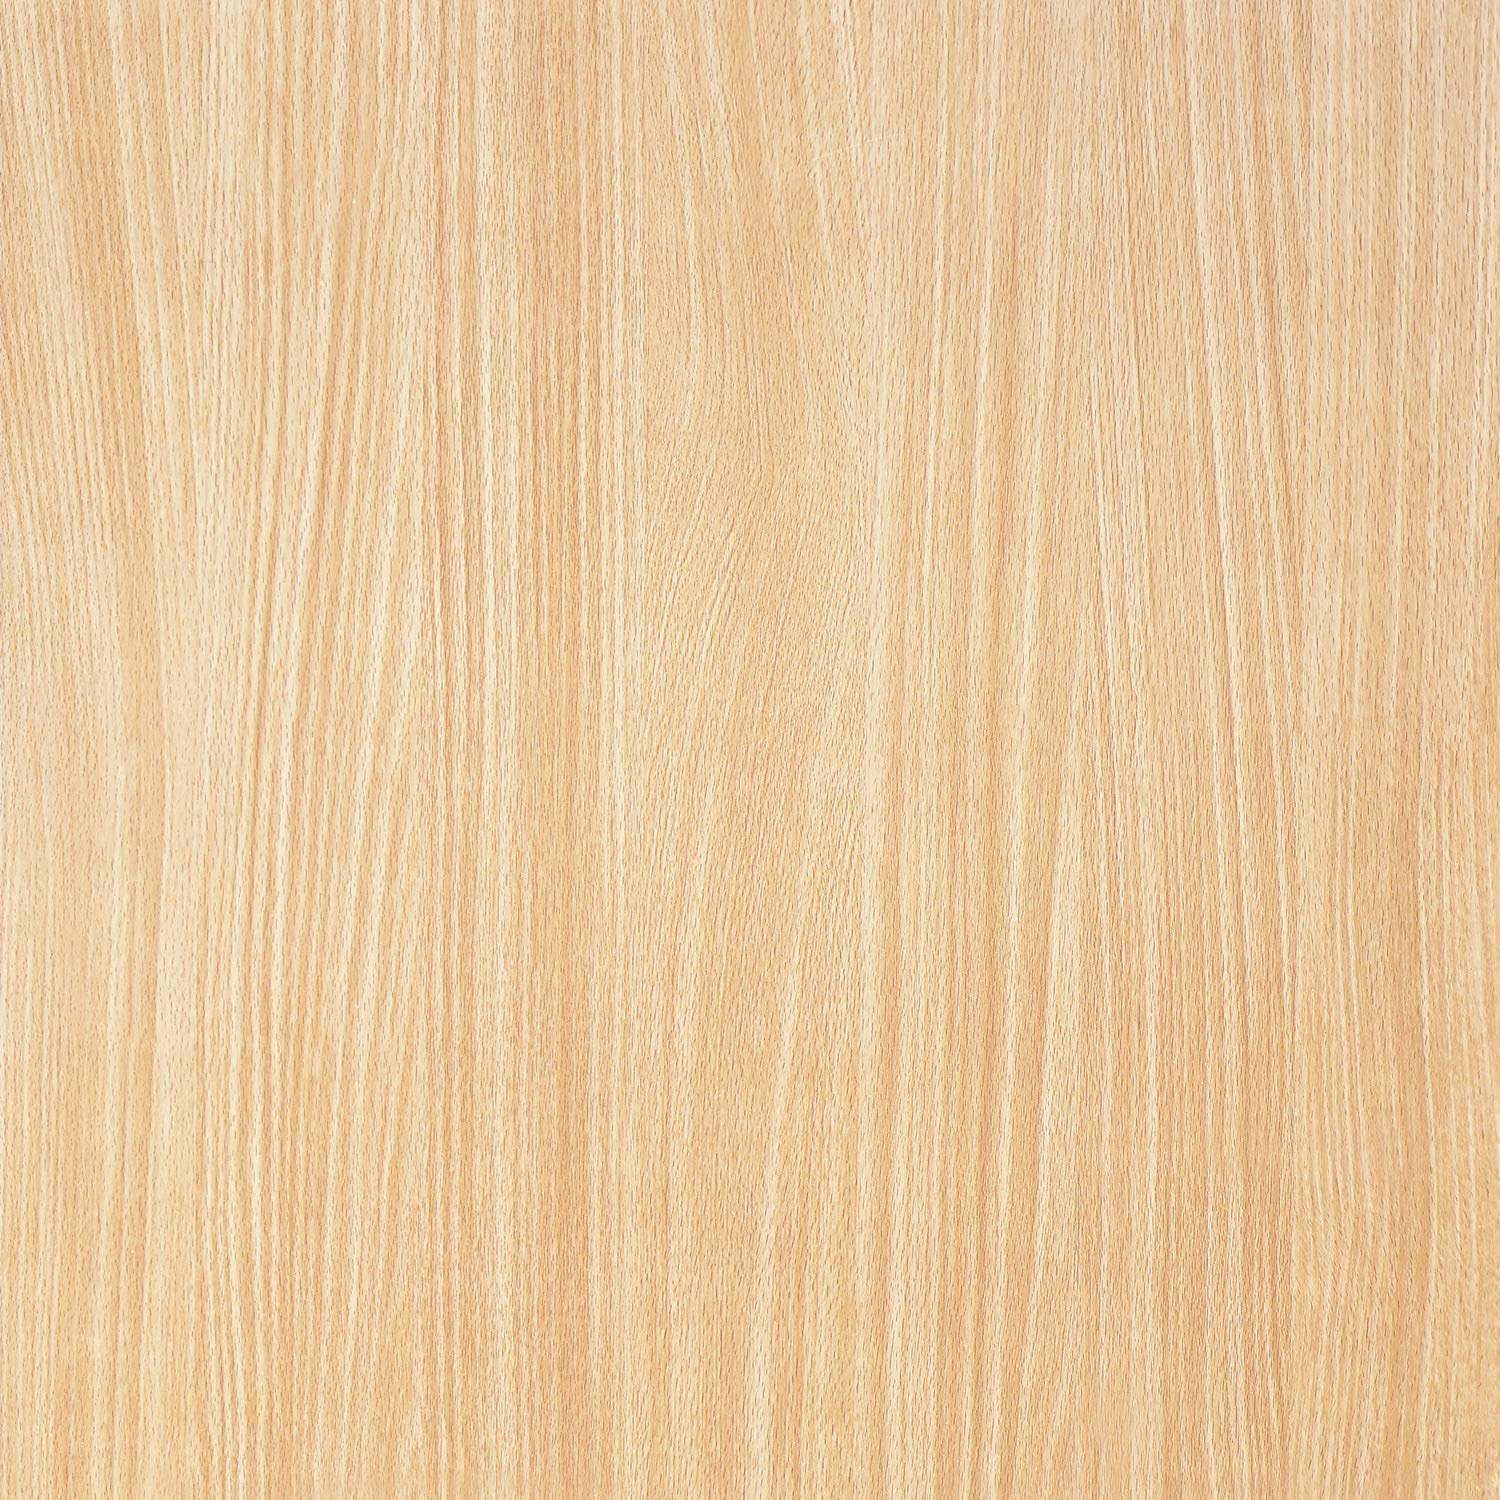 """Wood Grain Peel and Stick Film for Cabinets Shelves Drawers Self-Adhesive Panel for Kitchen Removable Faux Mapel Wood Textured Decal Peel and Stick Wallpaper Vinyl Decorative Roll 17.8""""x6.6'"""